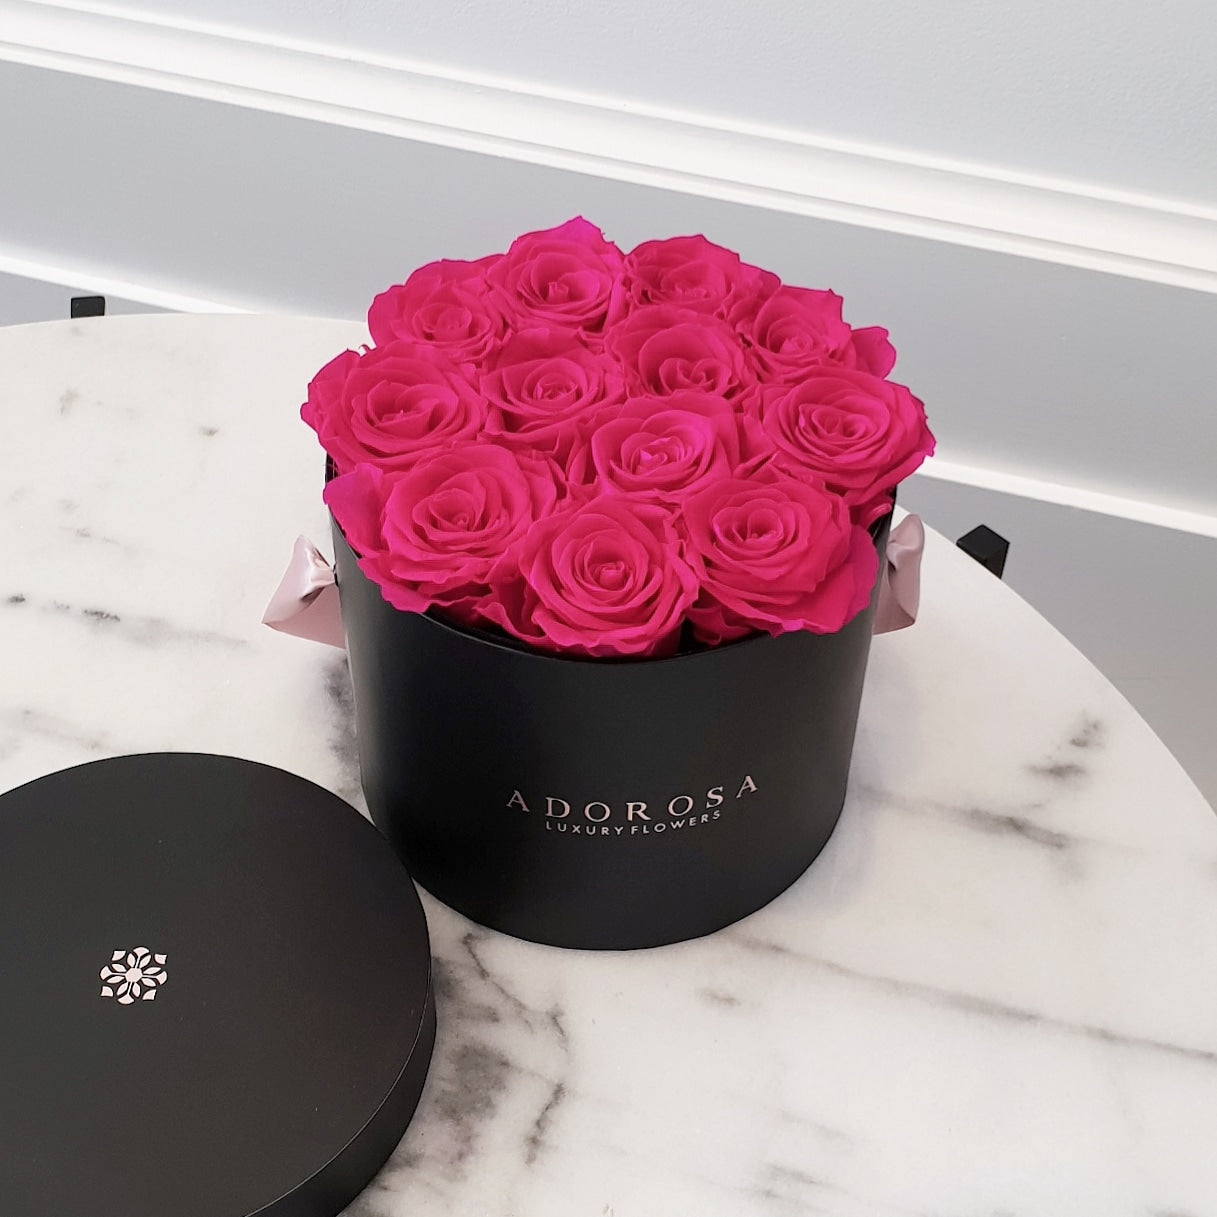 pink rose, long lasting roses, infinity roses, everlasting roses, preserved roses, preserved flowers, rose delivery sydney, rose box sydney, flower box sydney, preserved roses sydney, valentines day roses, luxury rose box sydney